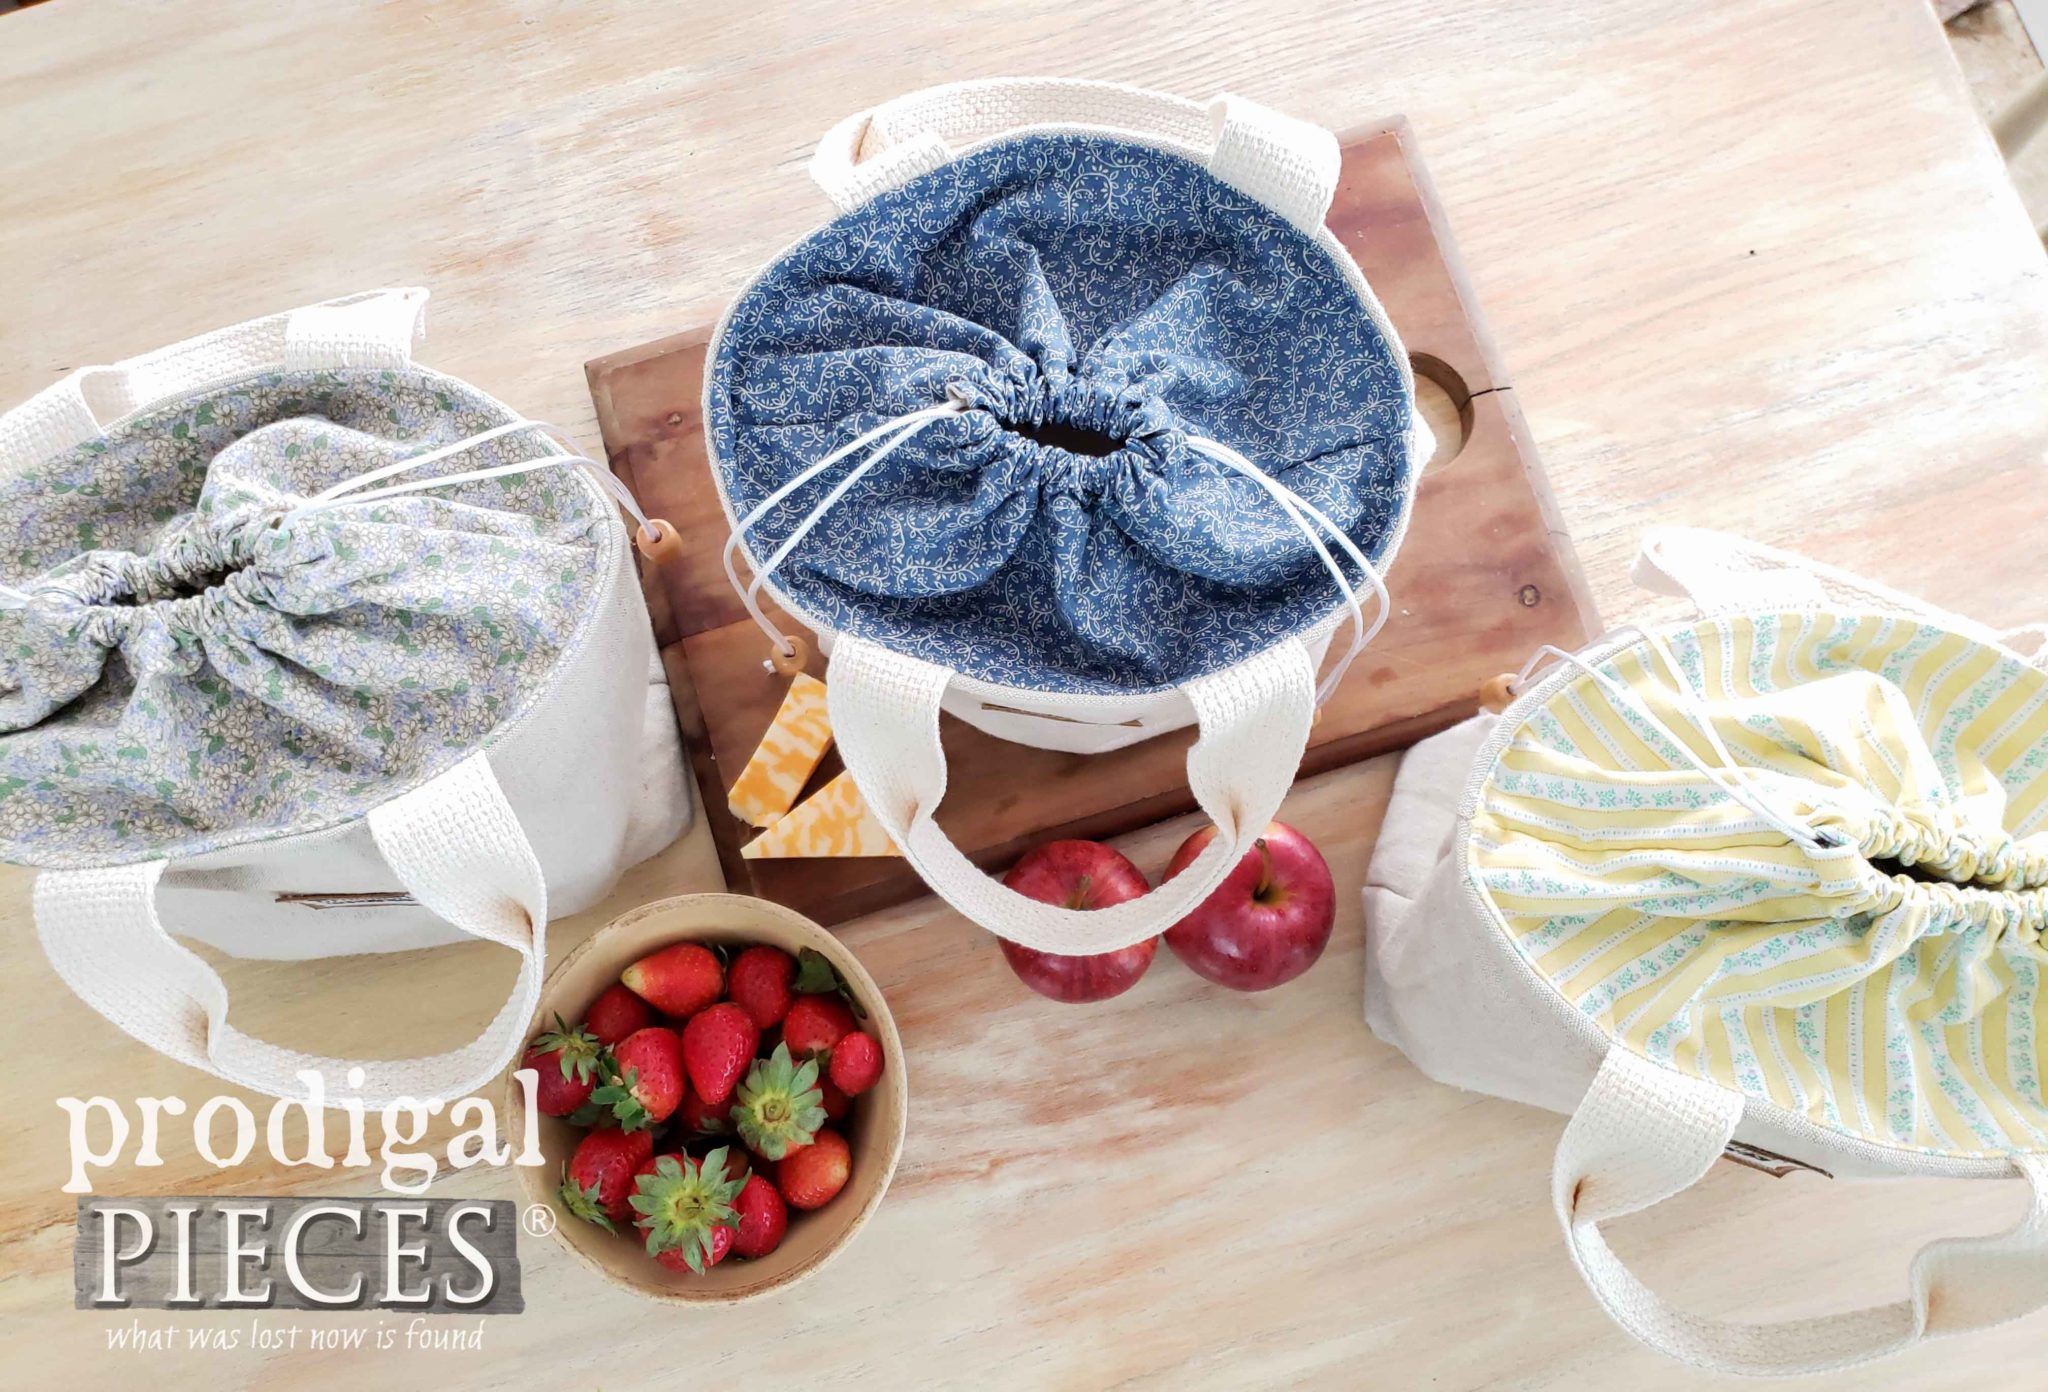 Linen Lunch Bags with Cinched Tops by Larissa of Prodigal Pieces | prodigalpieces.com #prodigalpieces #handmade #home #style #sewing